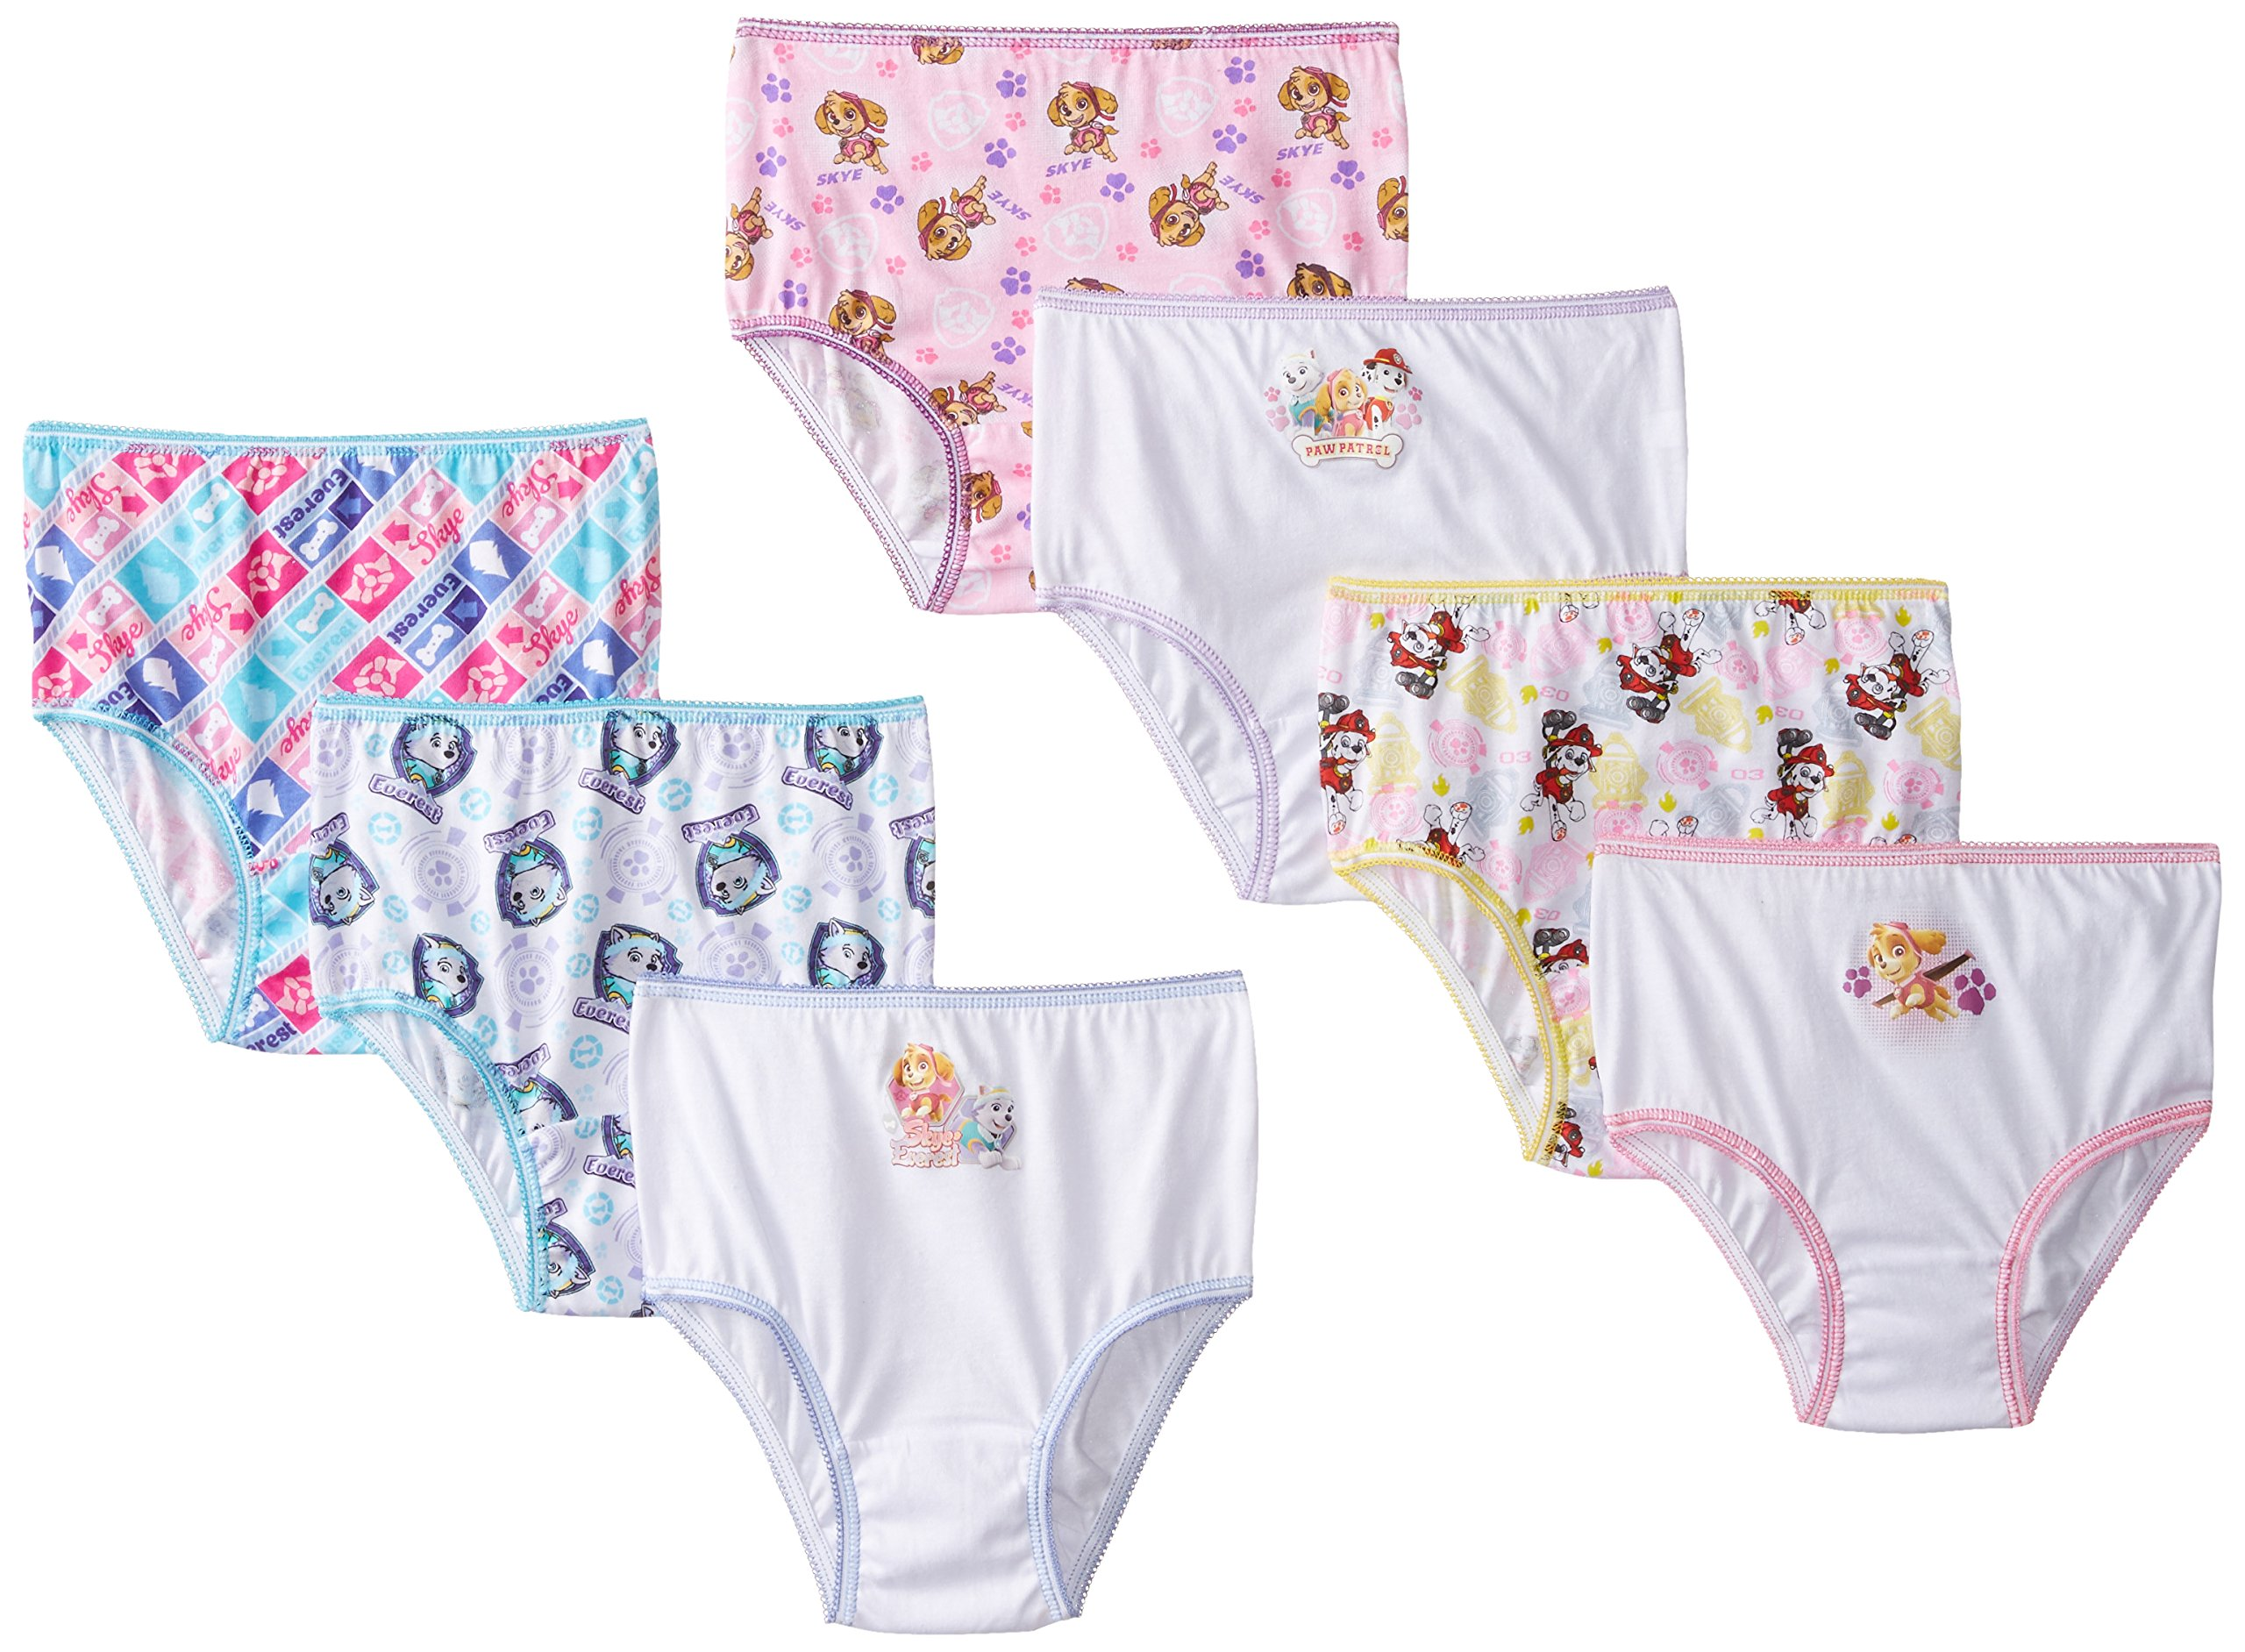 Nickelodeon Girls' Paw Patrol Underwear Briefs - 4T - Assorted (Pack of 7)